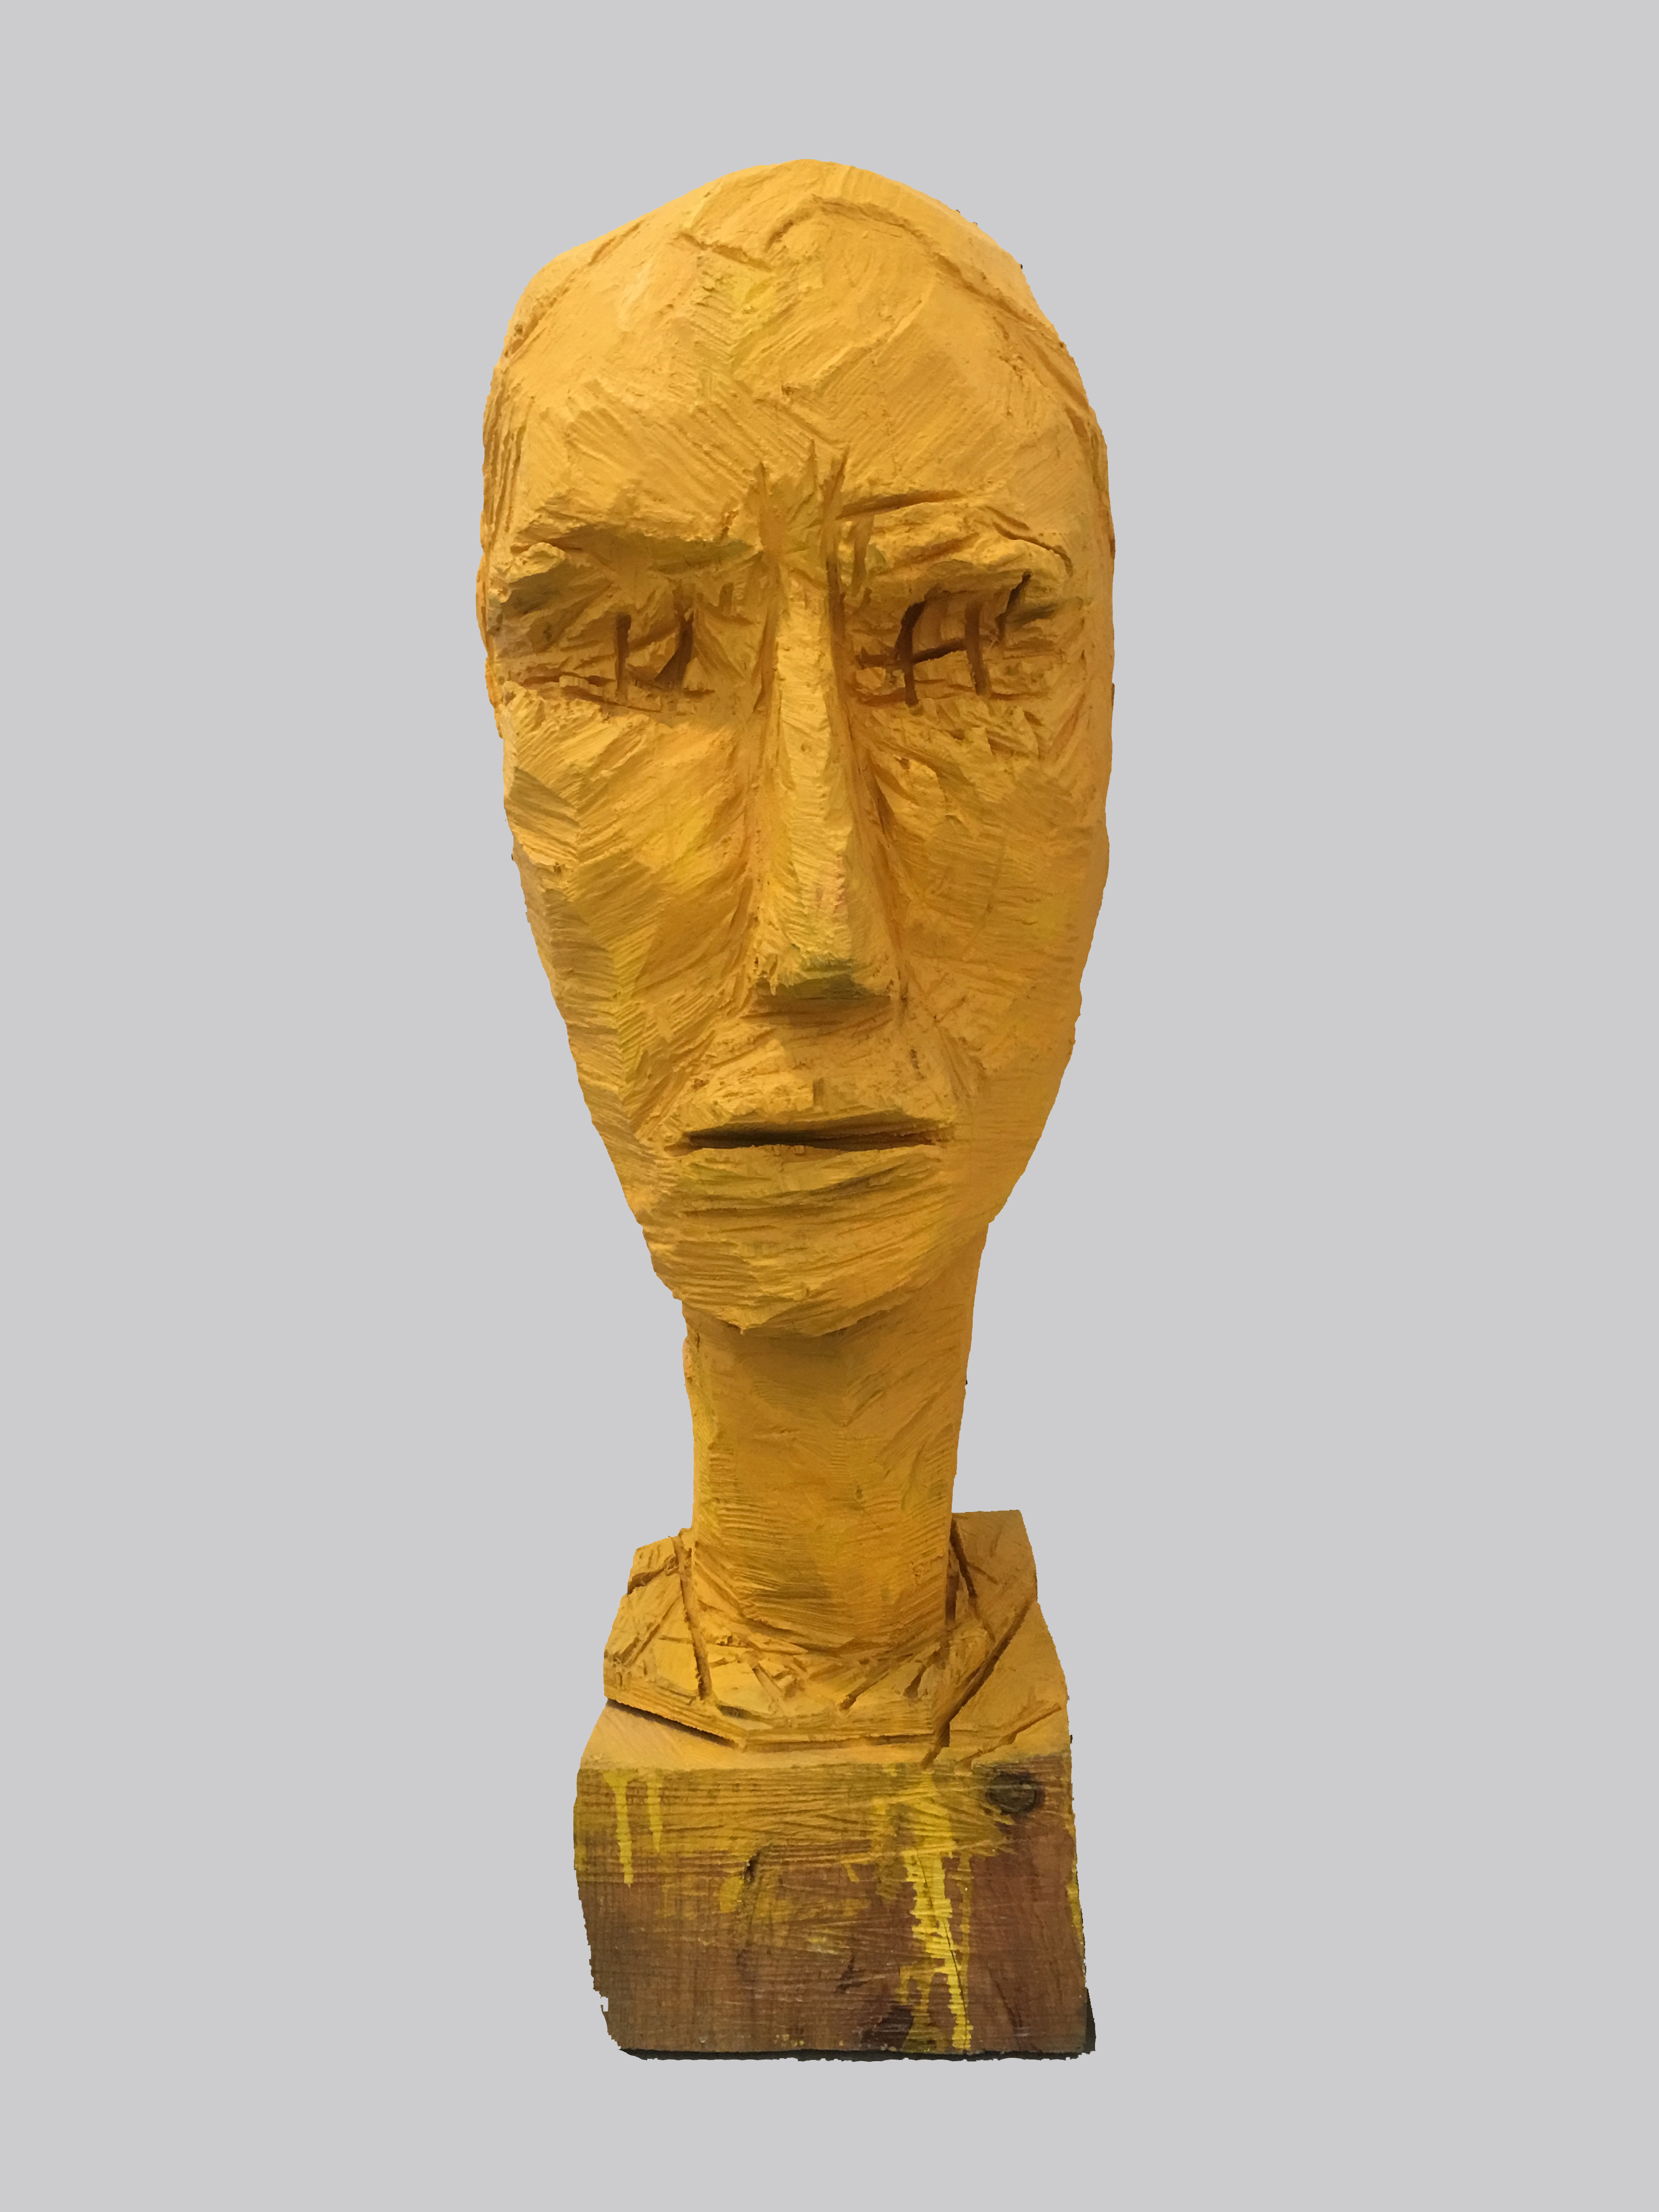 Haim Senior, yellow head, 2018 H-135 cm, 8,500$ (1)